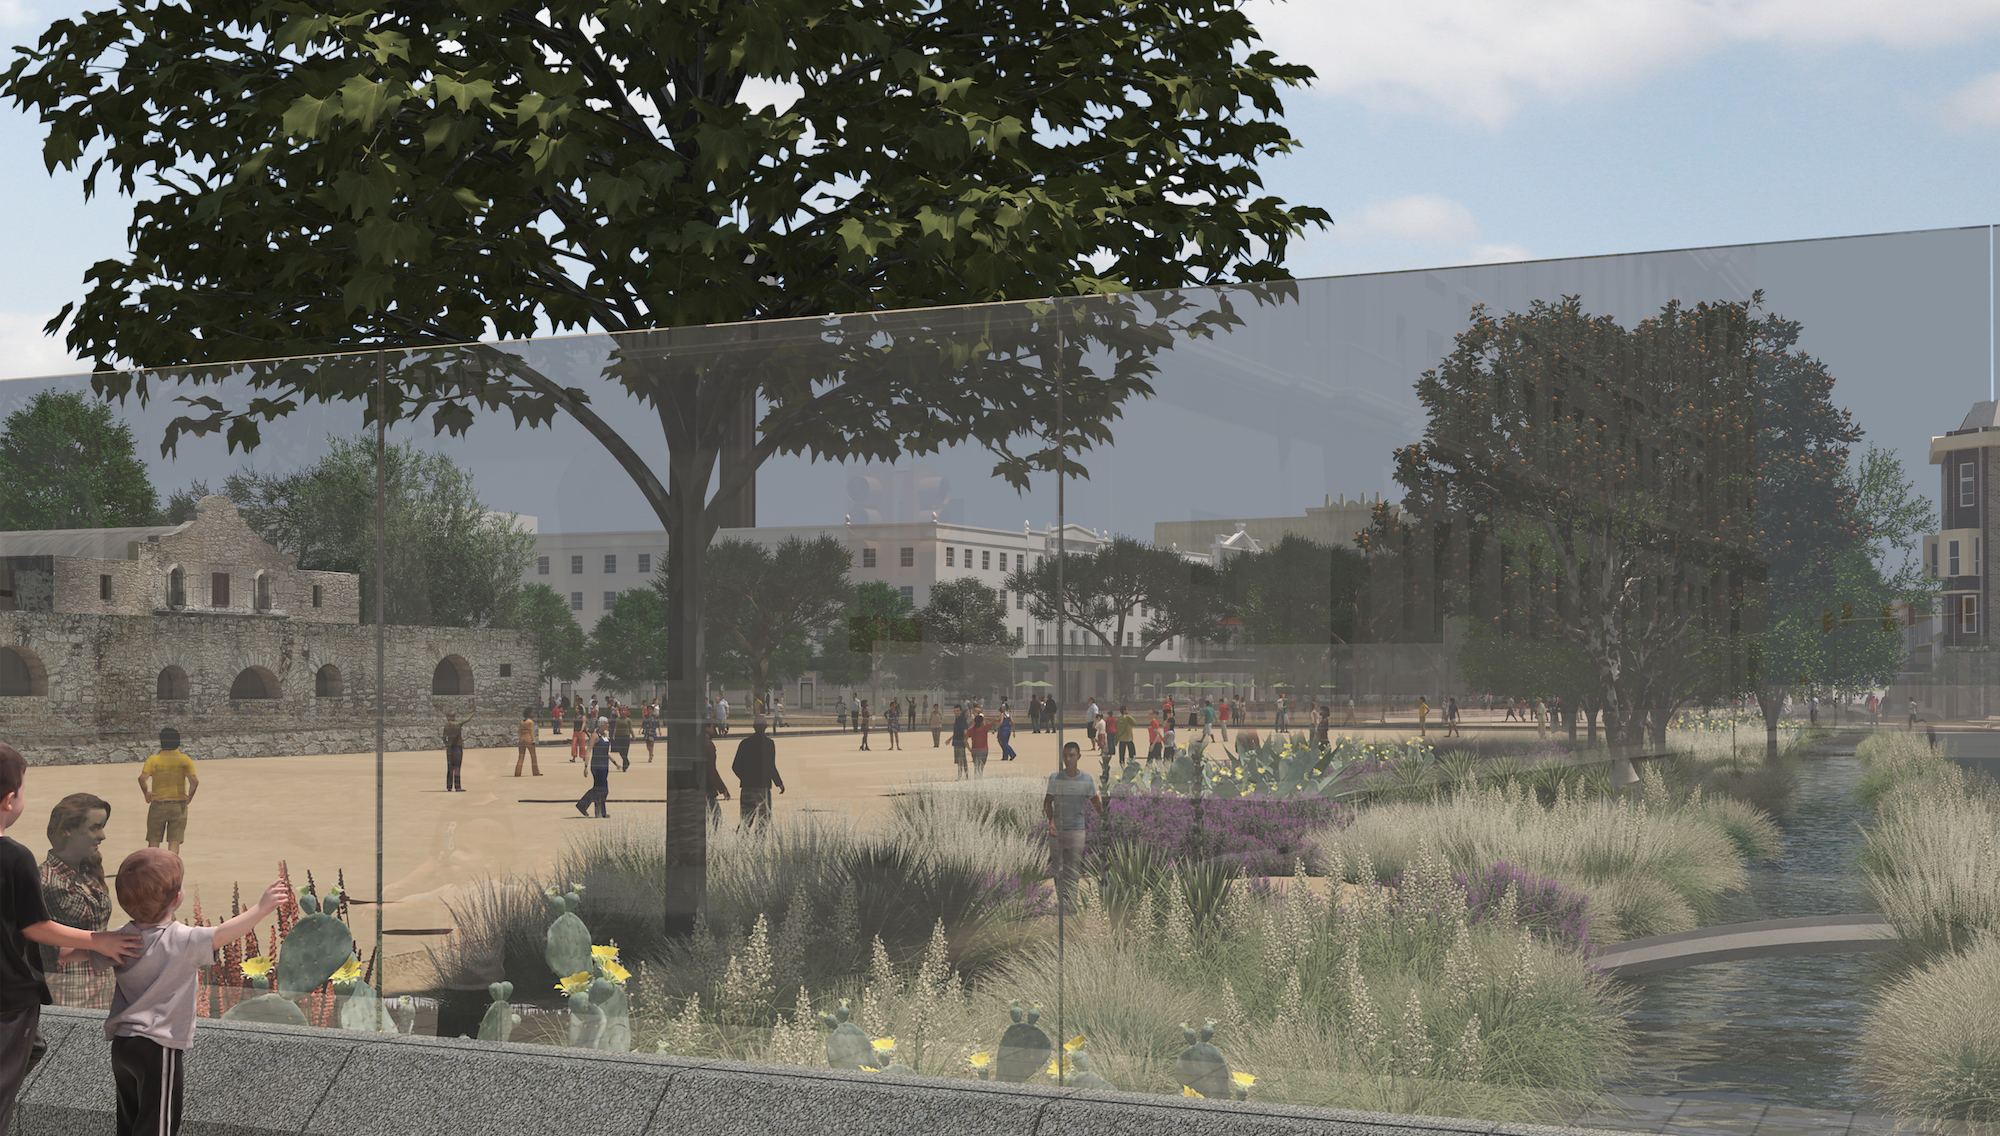 This rendering demonstrates the level of visibility designers hope to achieve at Alamo Plaza for passersby on Houston Street.